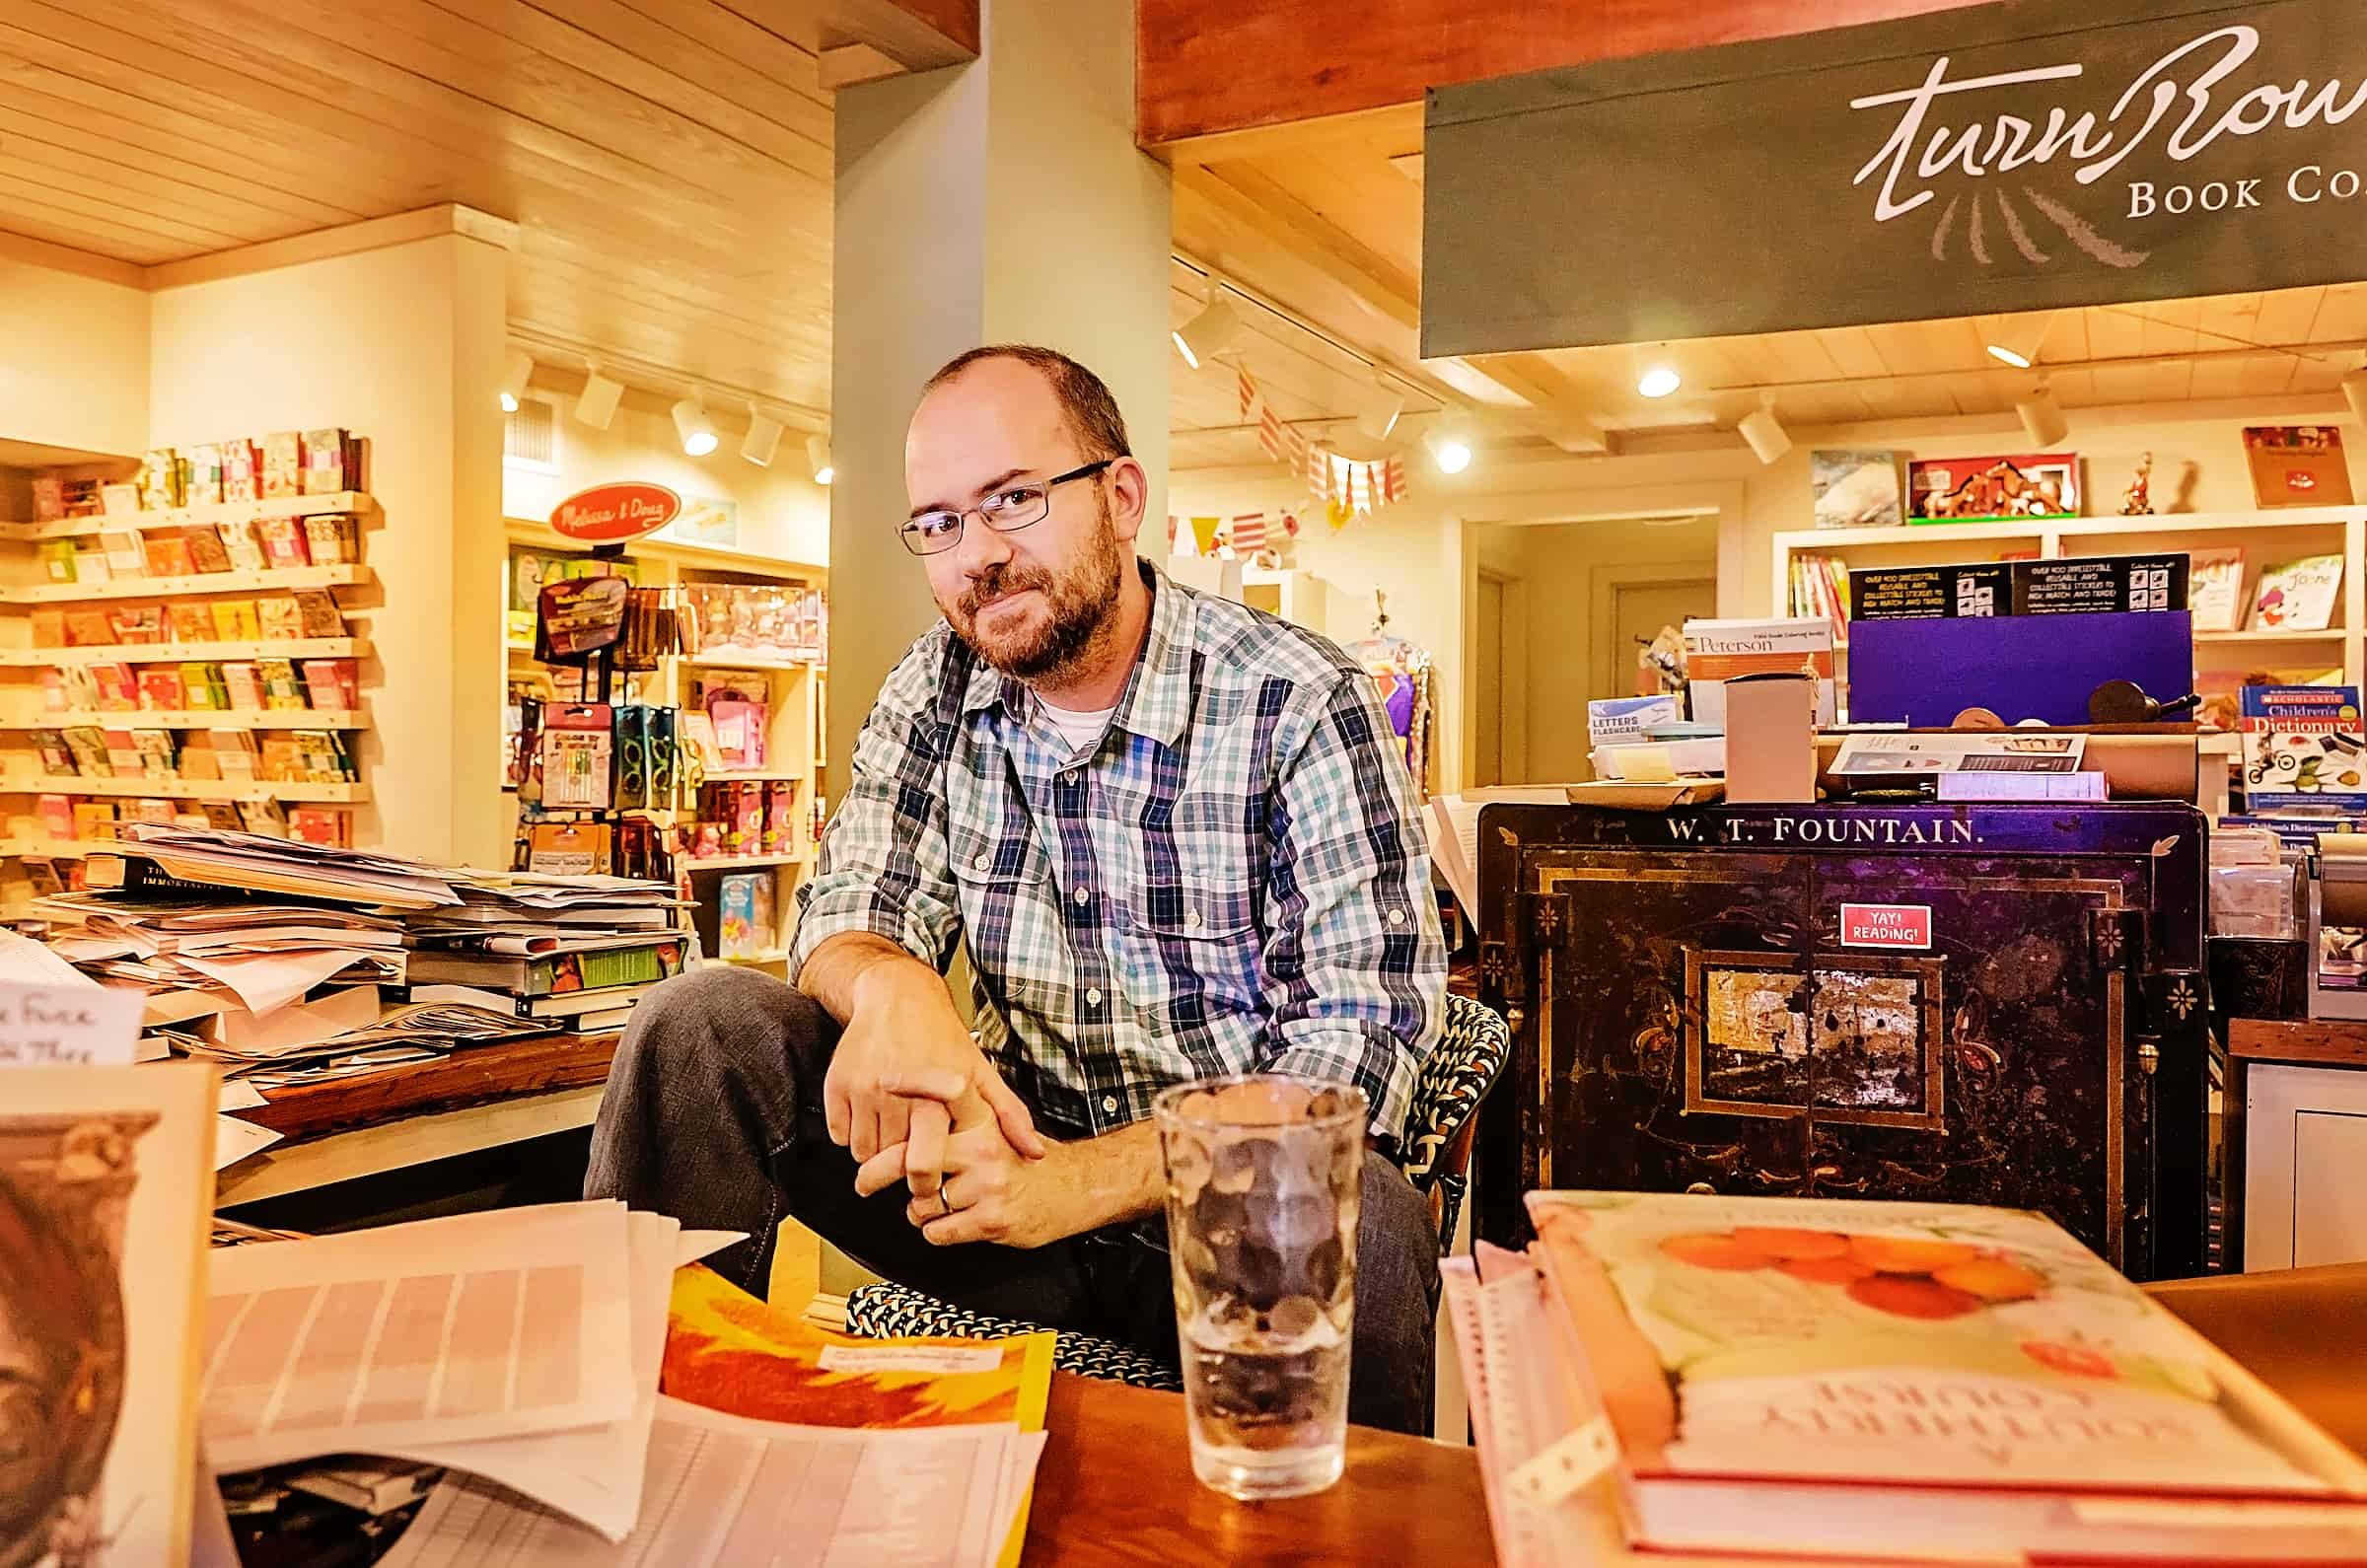 Jamie Kornegay, owner of TurnRow Book Company in Greenwood, Mississippi